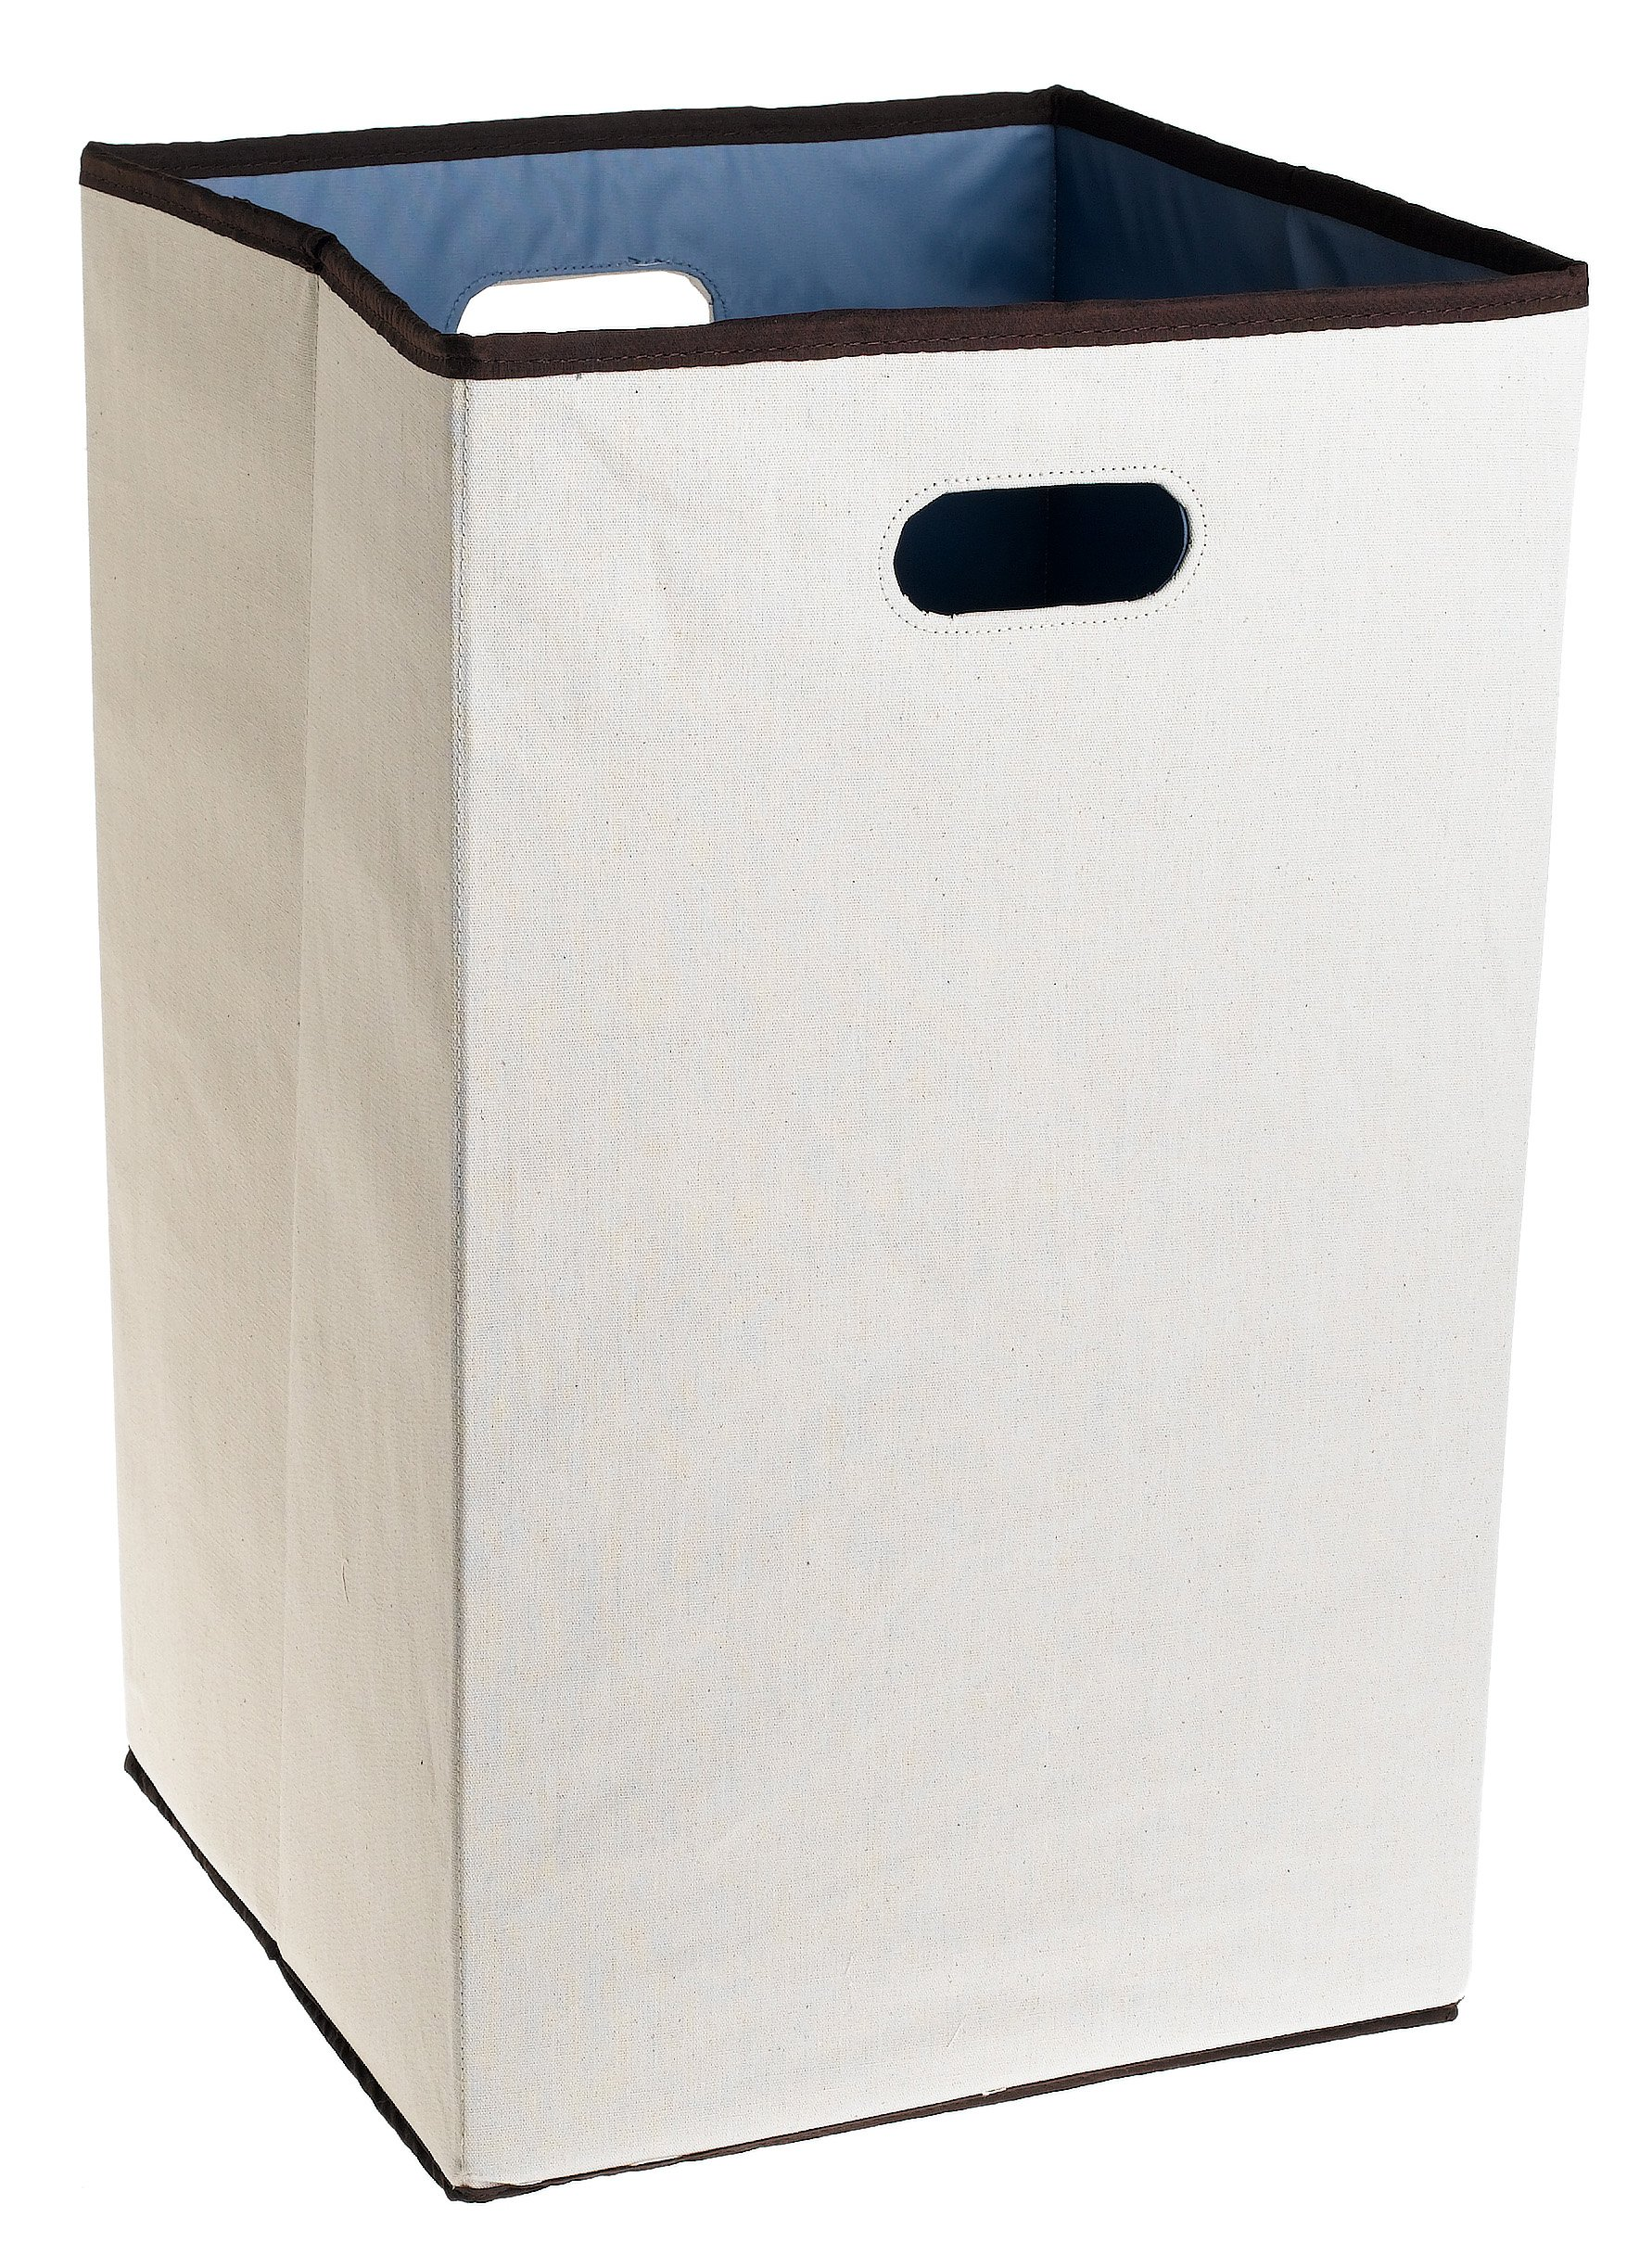 Laundry hamper basket dirty clothes clothing storage bag sorter organizer folder ebay - Hamper for dirty clothes ...